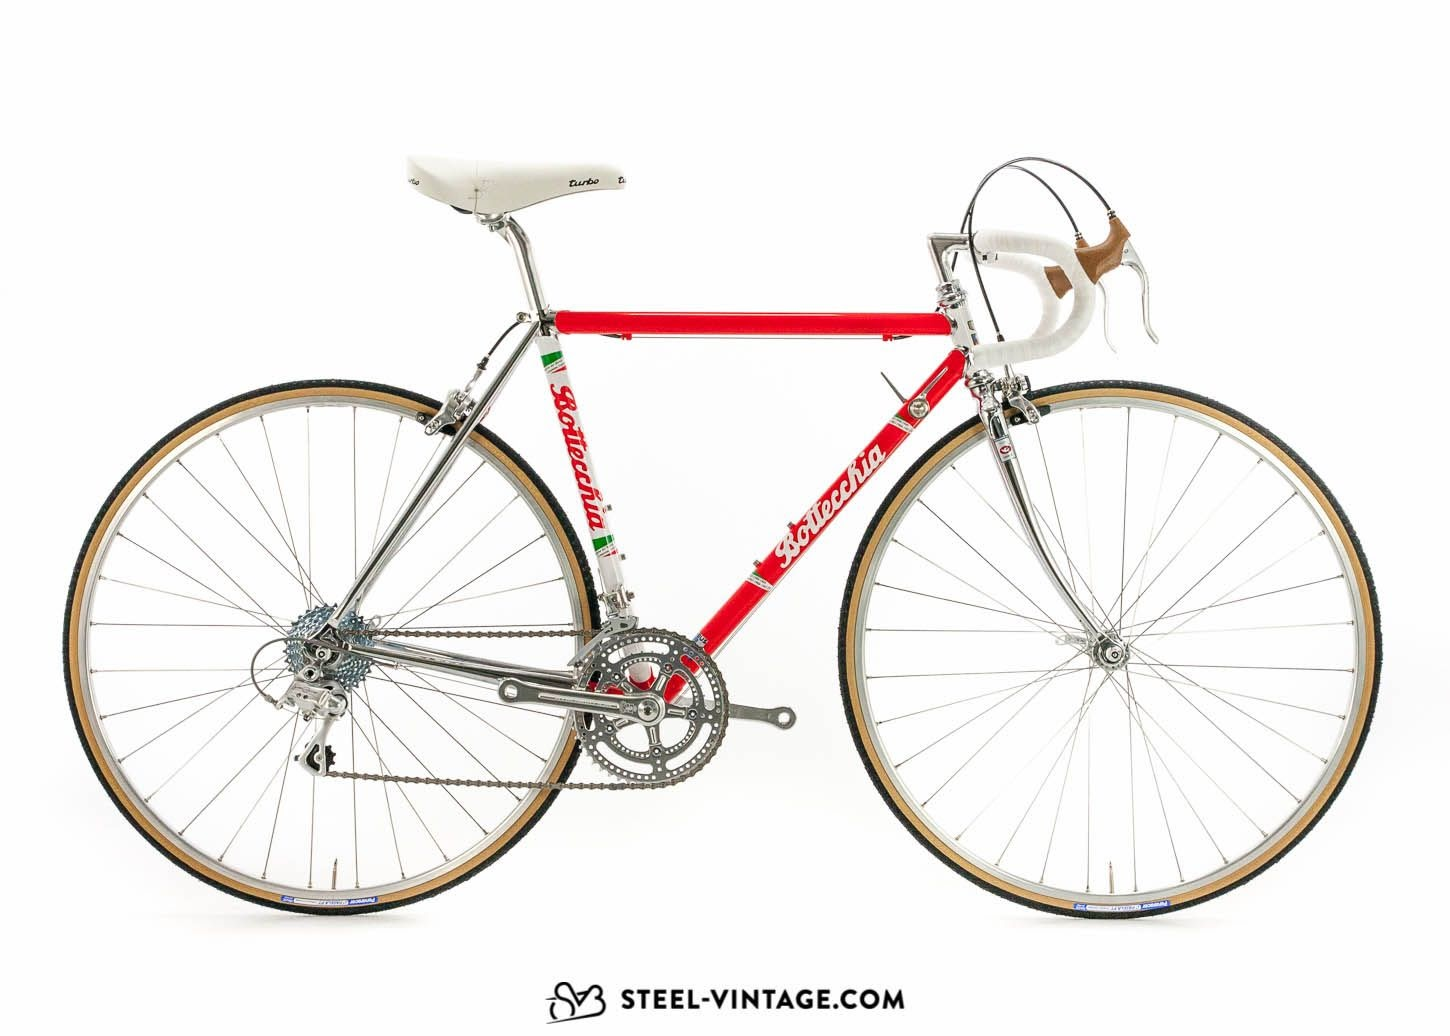 A beautiful example of a retro bike: the Bottecchia Leggendaria. It has the classy style of a vintage bike but has been constructed with modern parts.